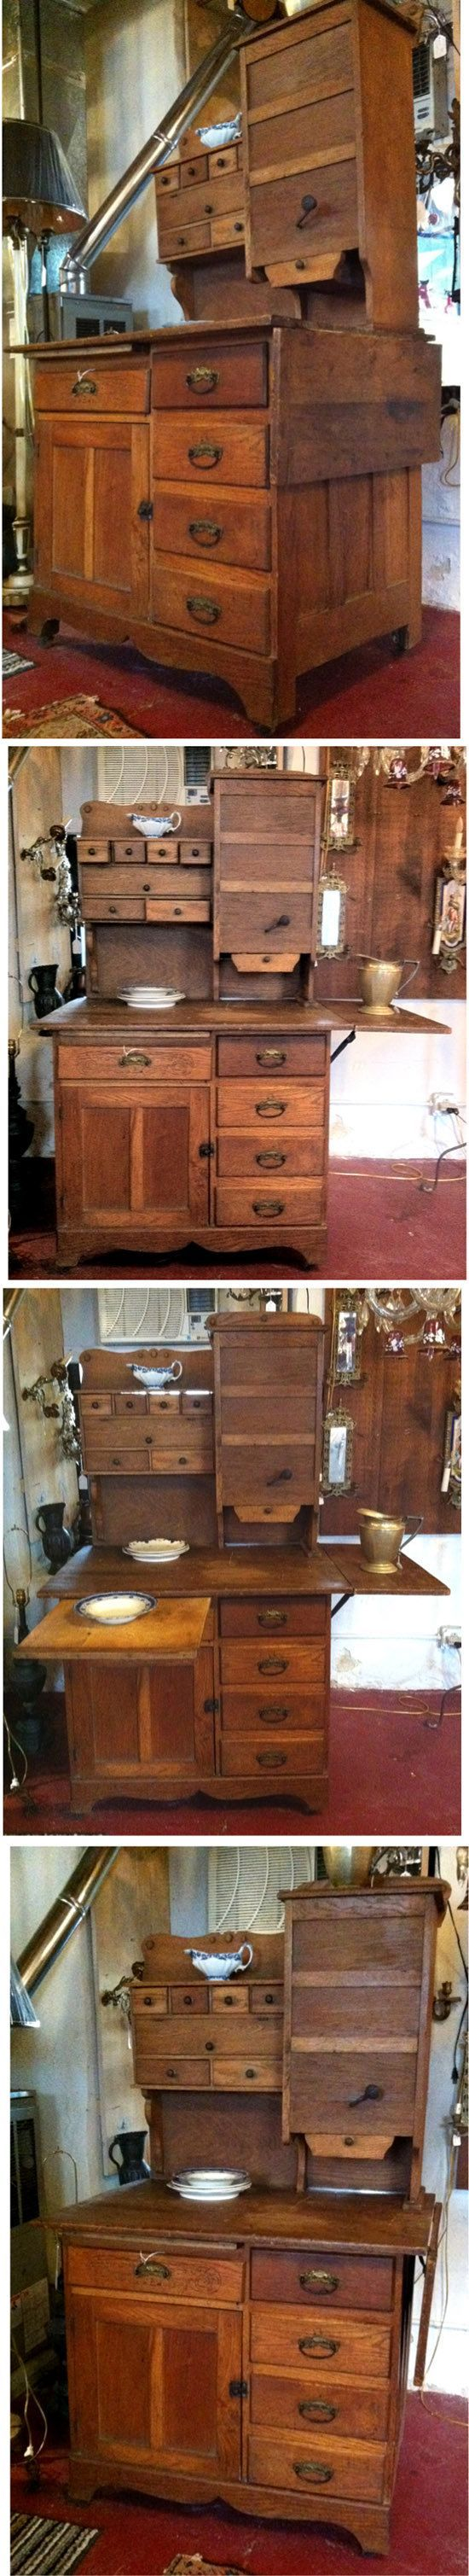 72 best Cabinets, Chests, Cupboards images on Pinterest | Credenzas ...